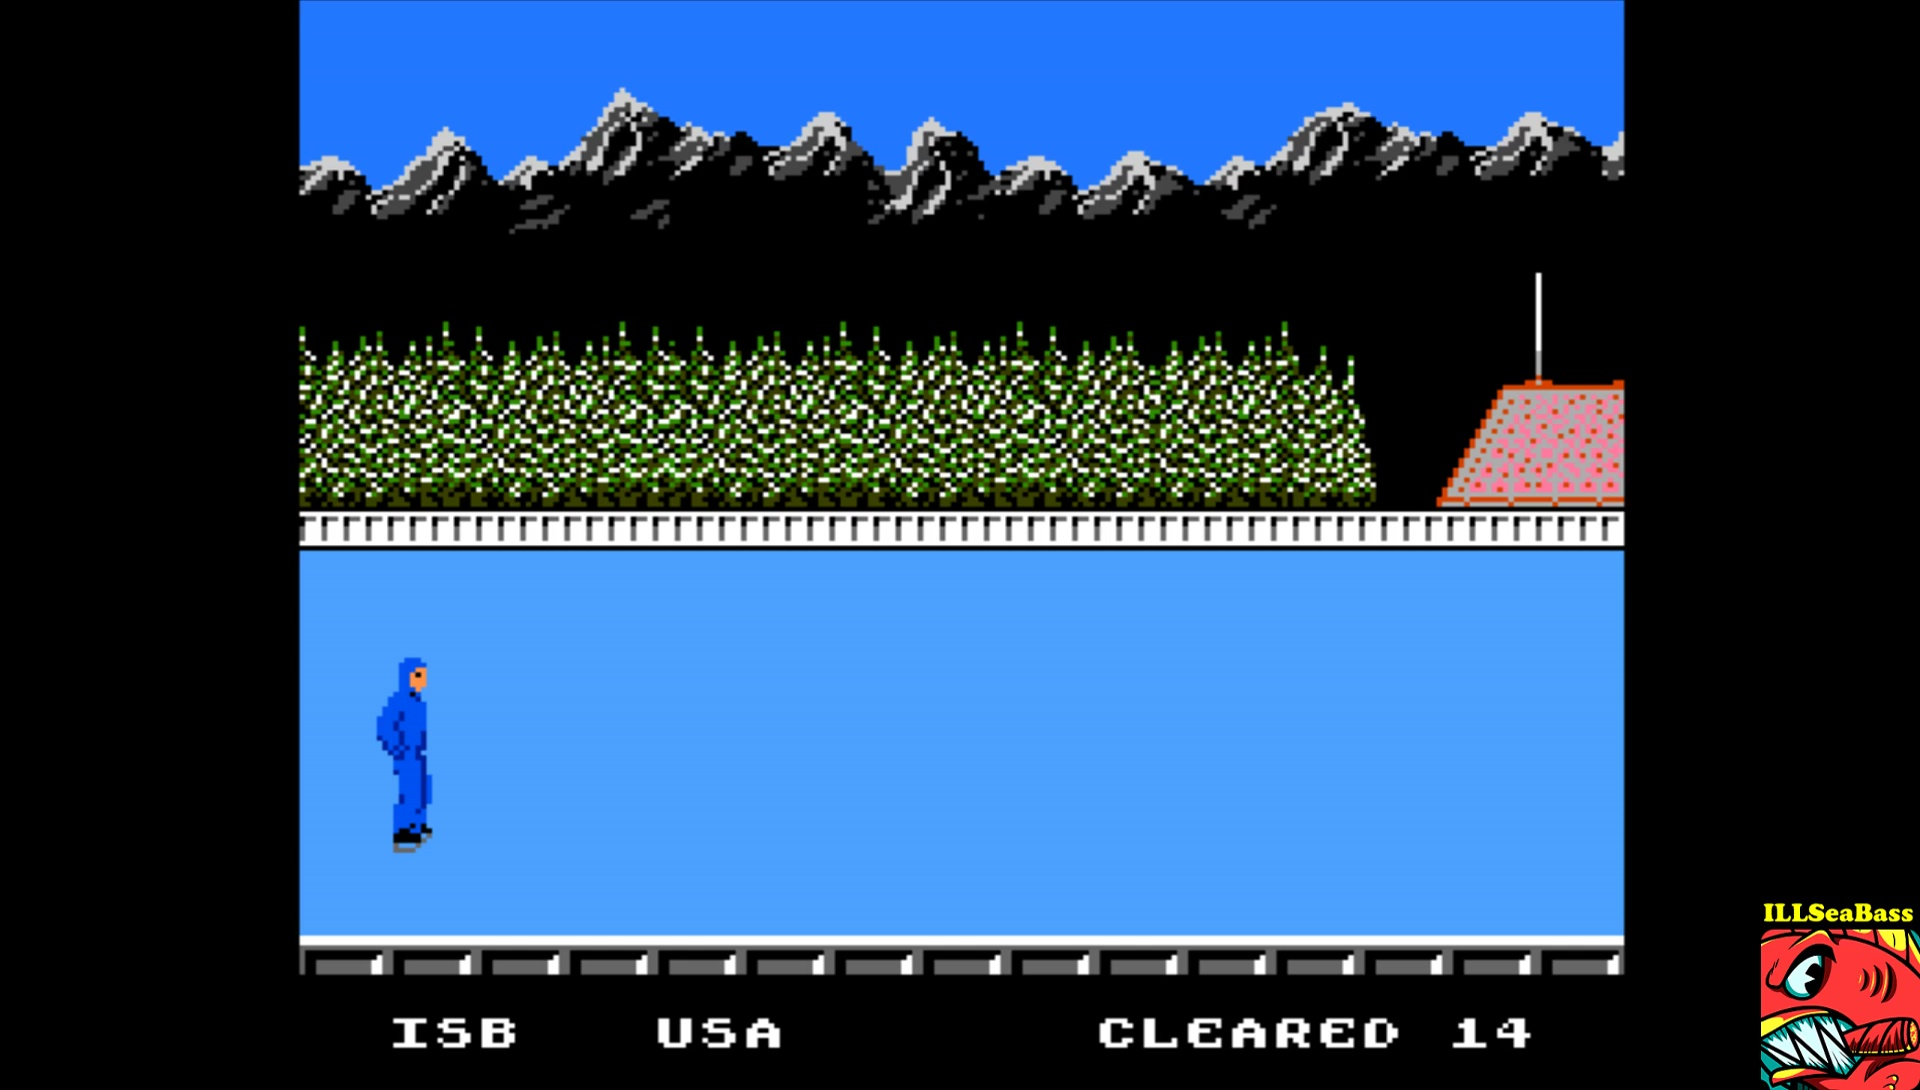 ILLSeaBass: World Games: Barrel Jumping [Barrels cleared] (NES/Famicom Emulated) 14 points on 2017-04-27 20:24:14